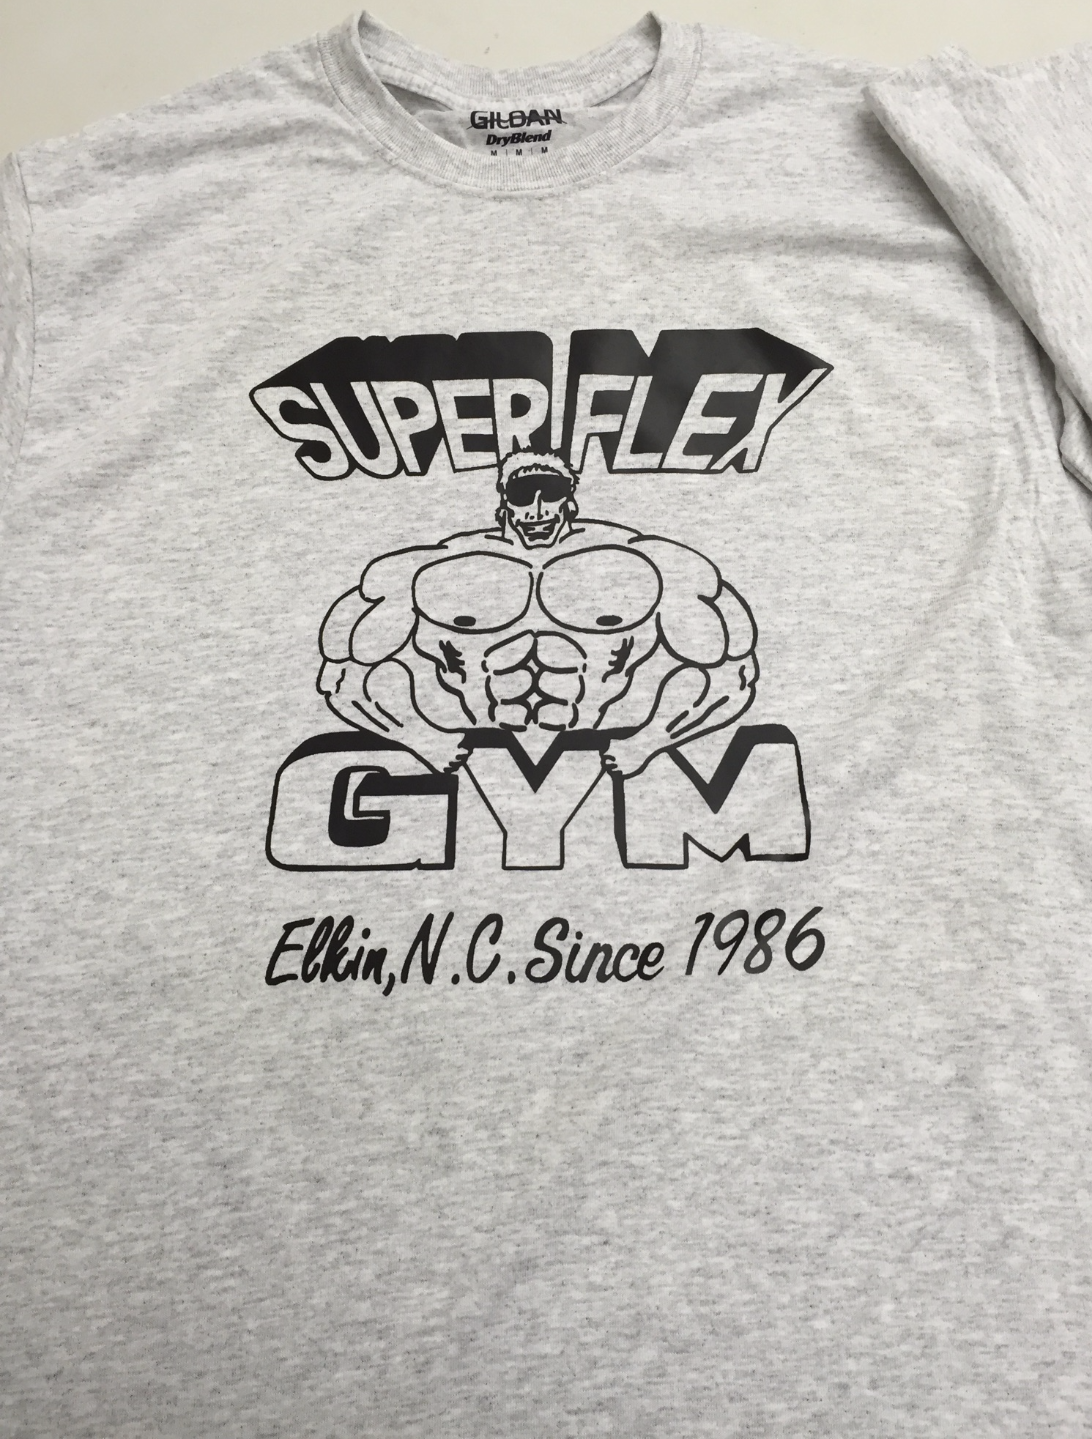 Superflex Gym